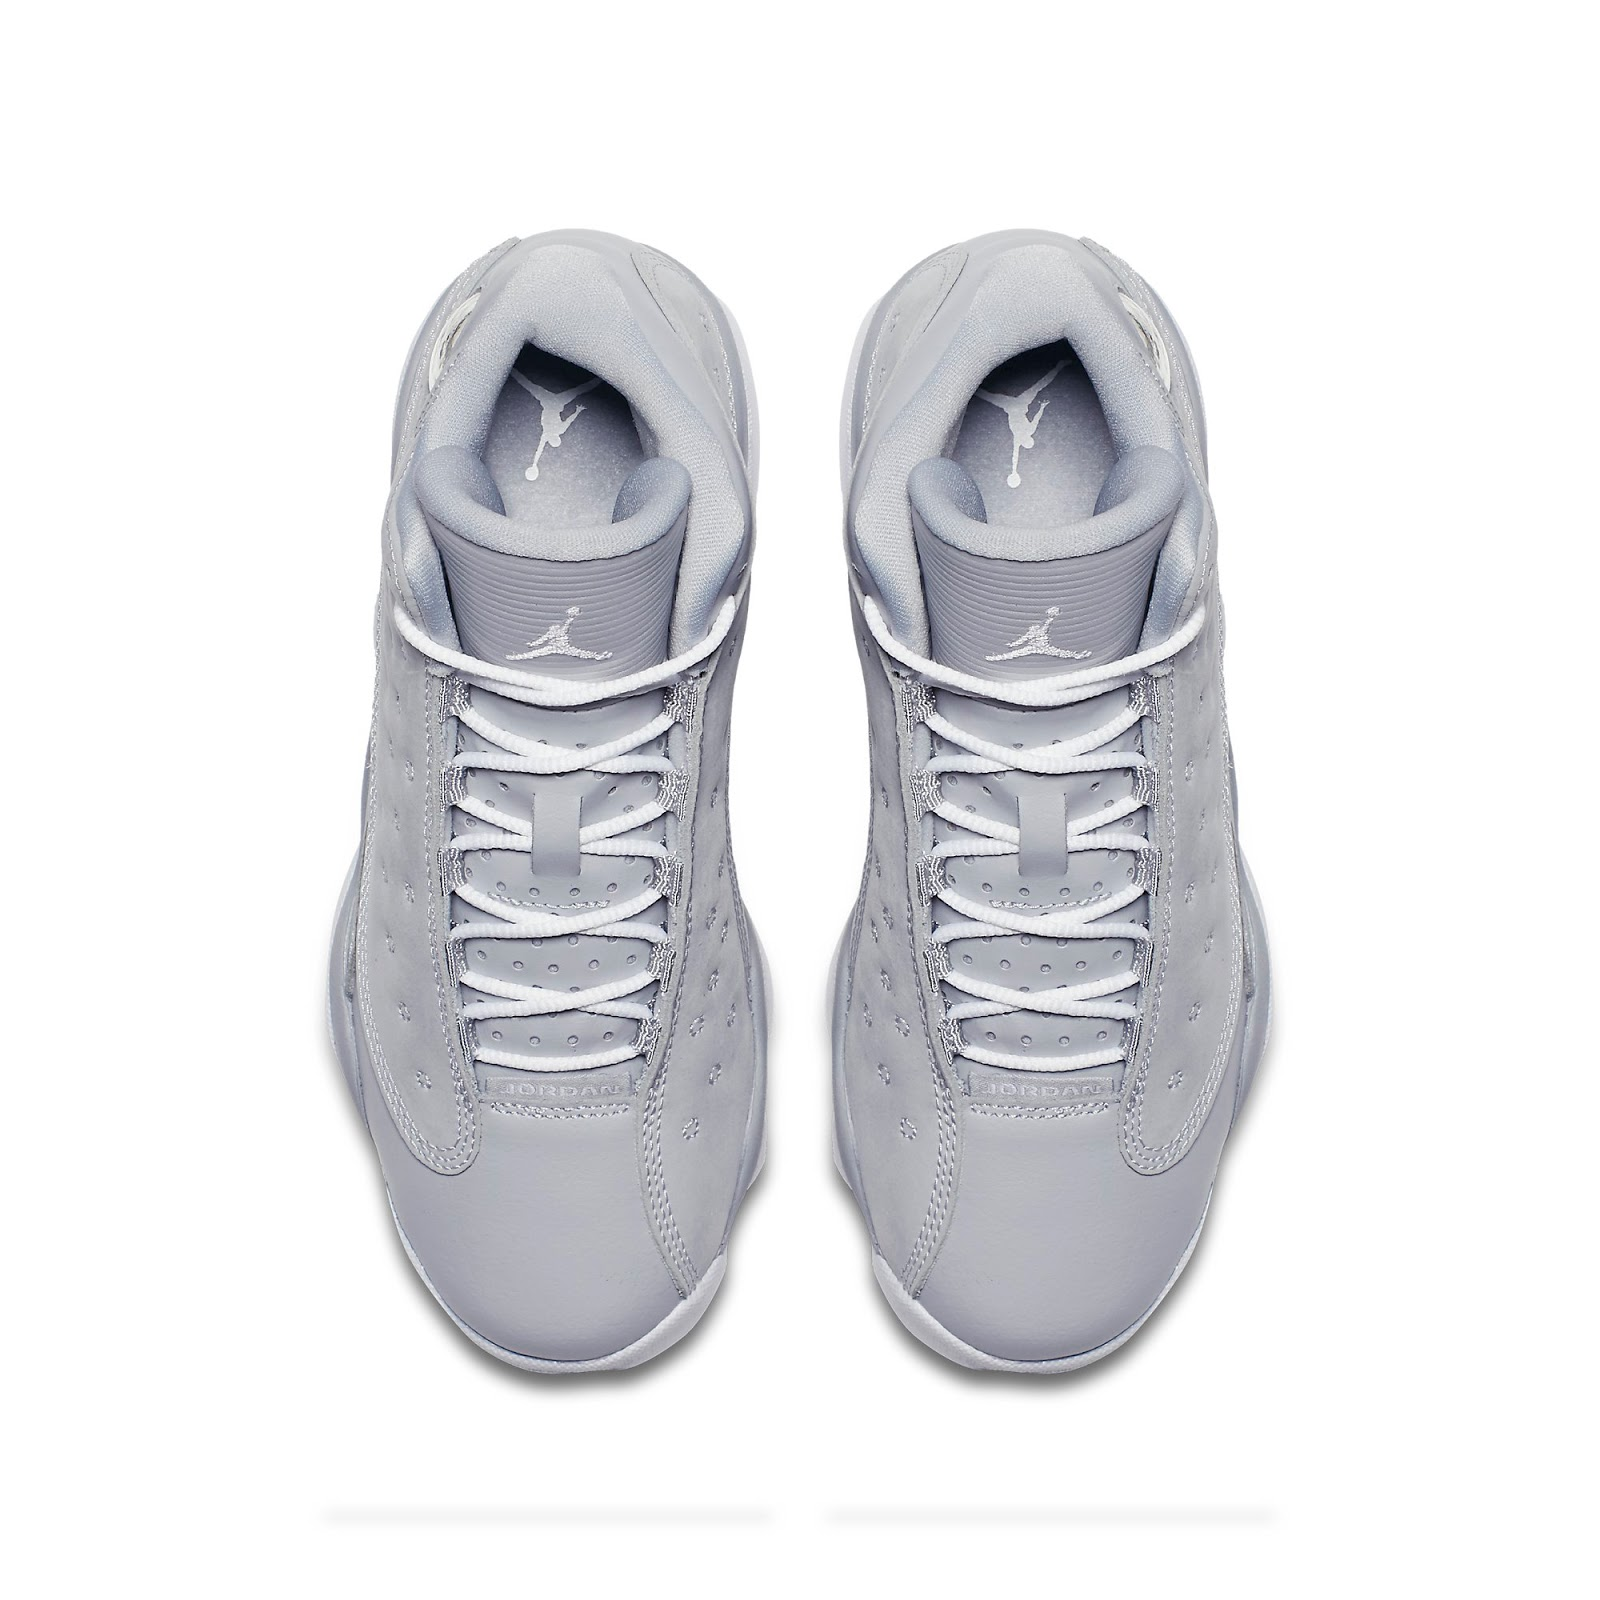 7c5a44e65fe302 ajordanxi Your  1 Source For Sneaker Release Dates  Girls Air Jordan ...